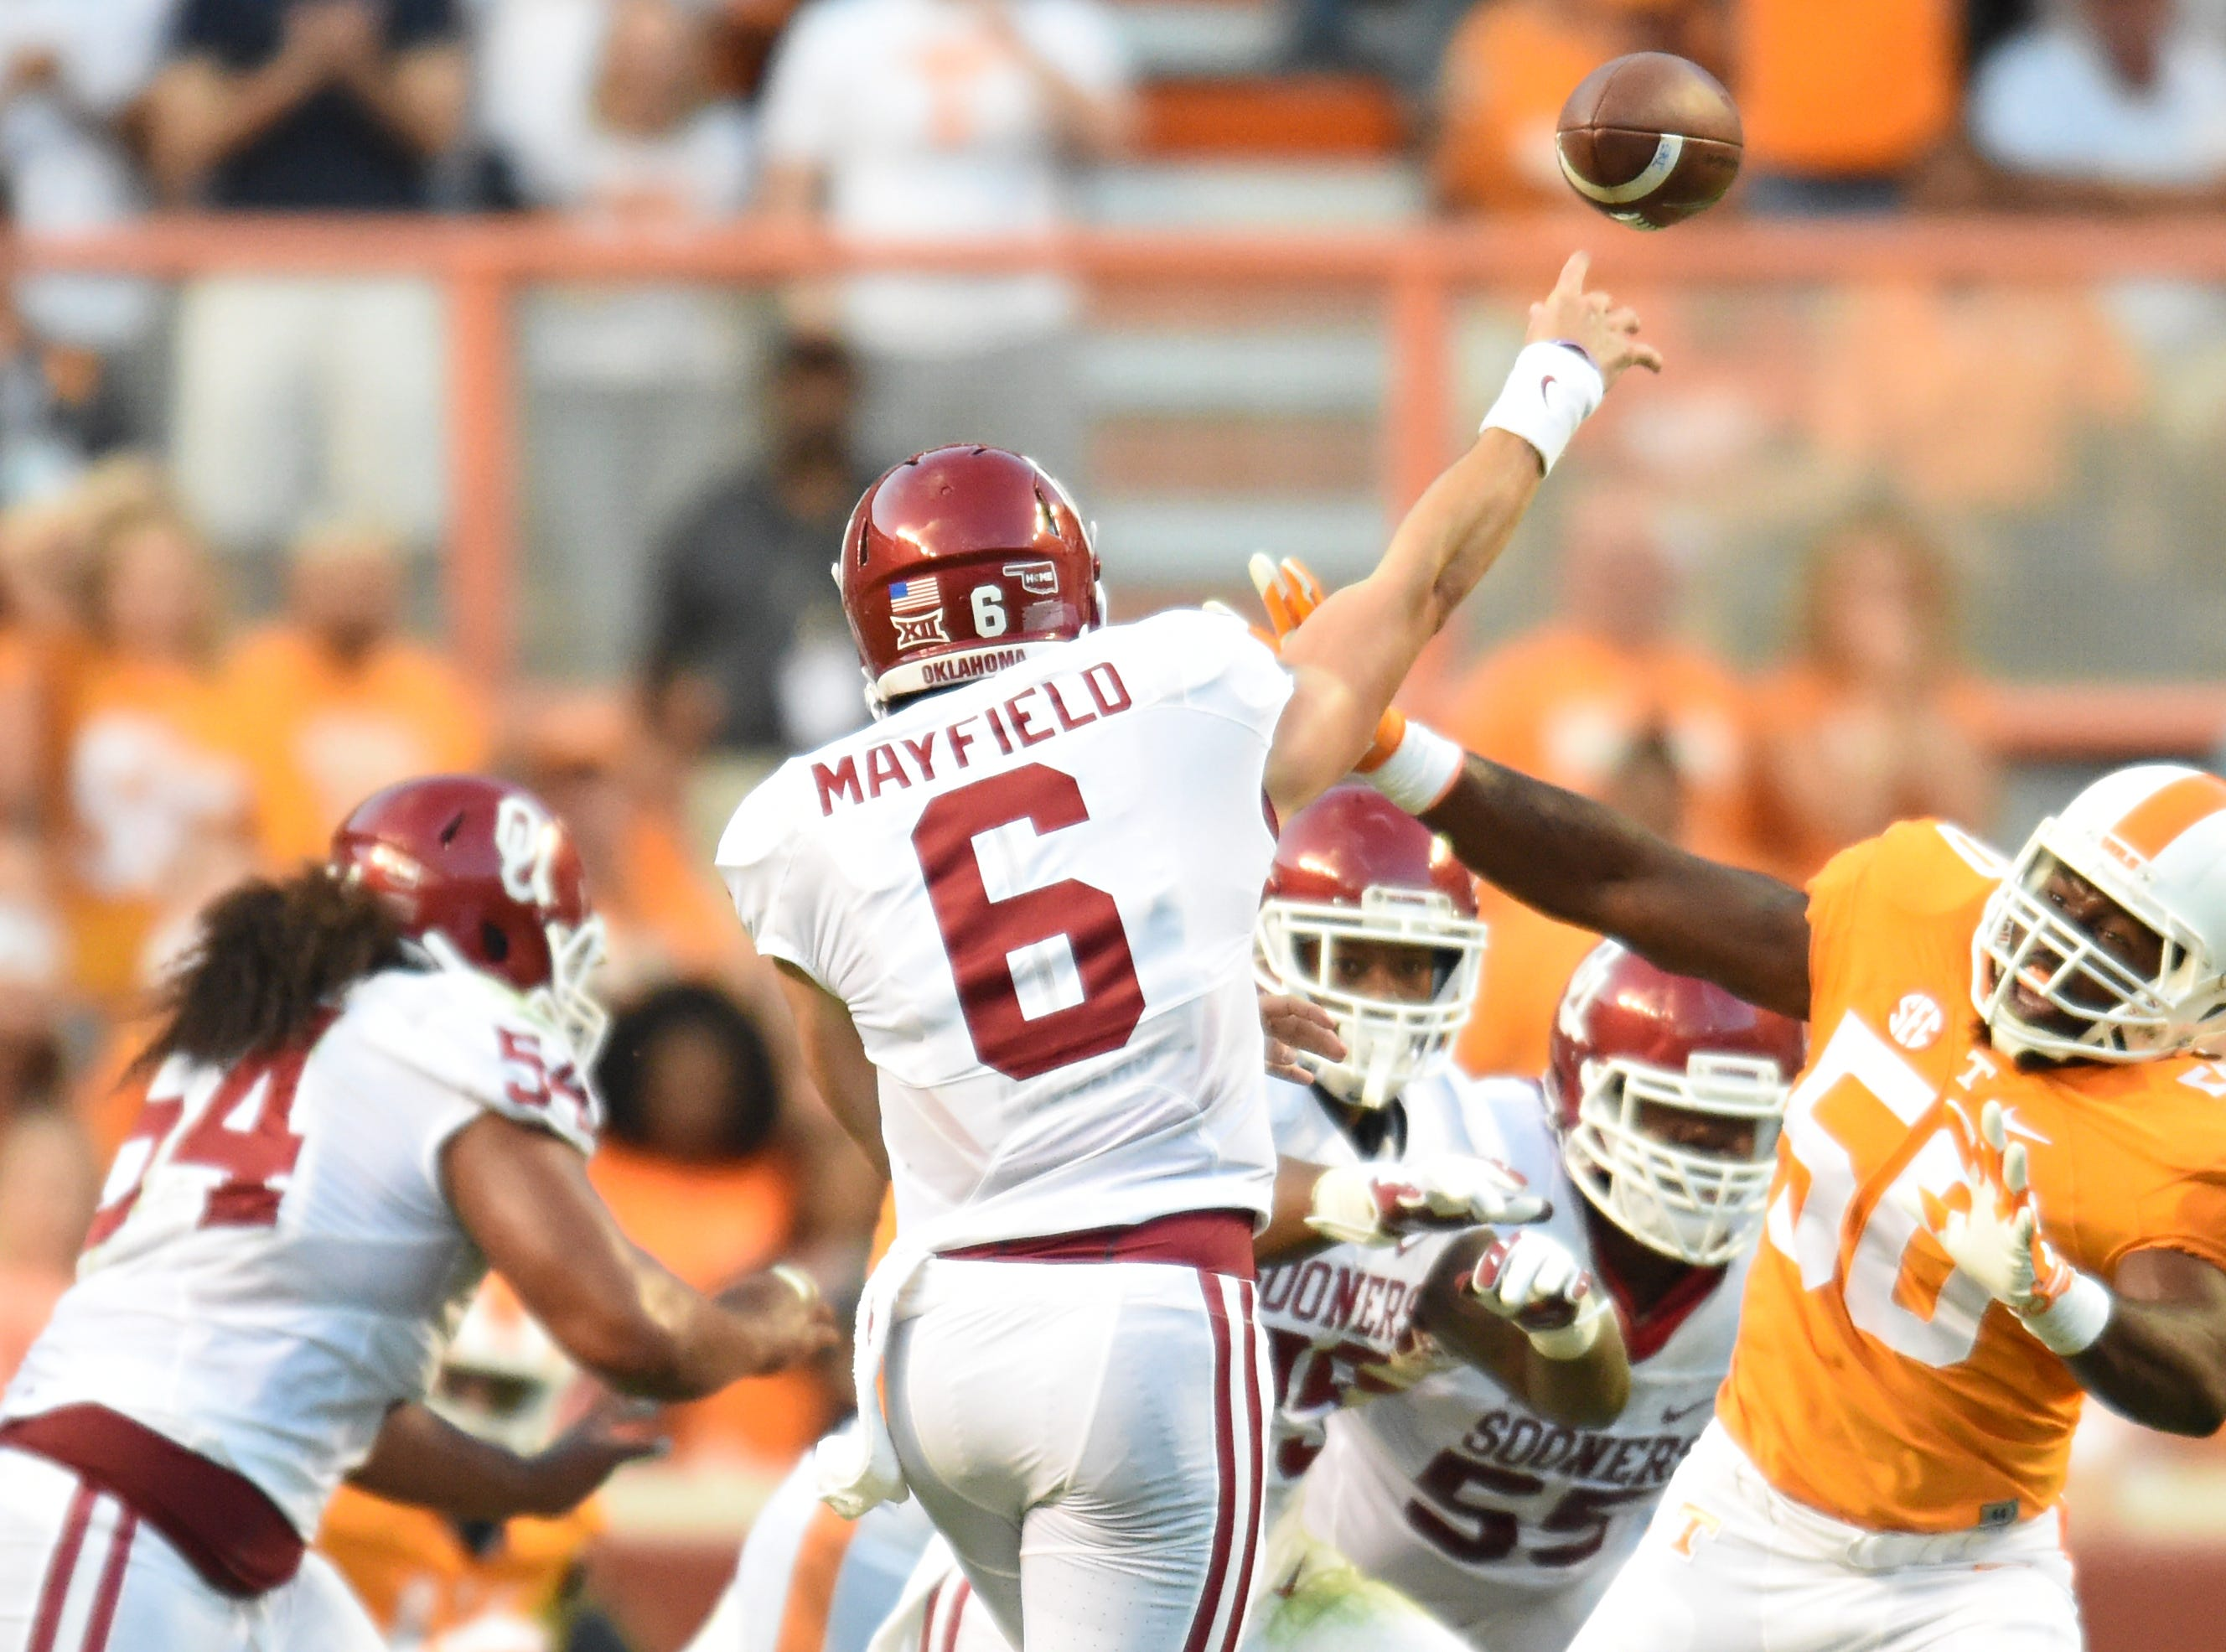 Oklahoma quarterback Baker Mayfield (6) passes under pressure from Tennessee defensive lineman Corey Vereen (50) during the first half at Neyland Stadium on Saturday, Sept. 12, 2015 in Knoxville, Tenn.